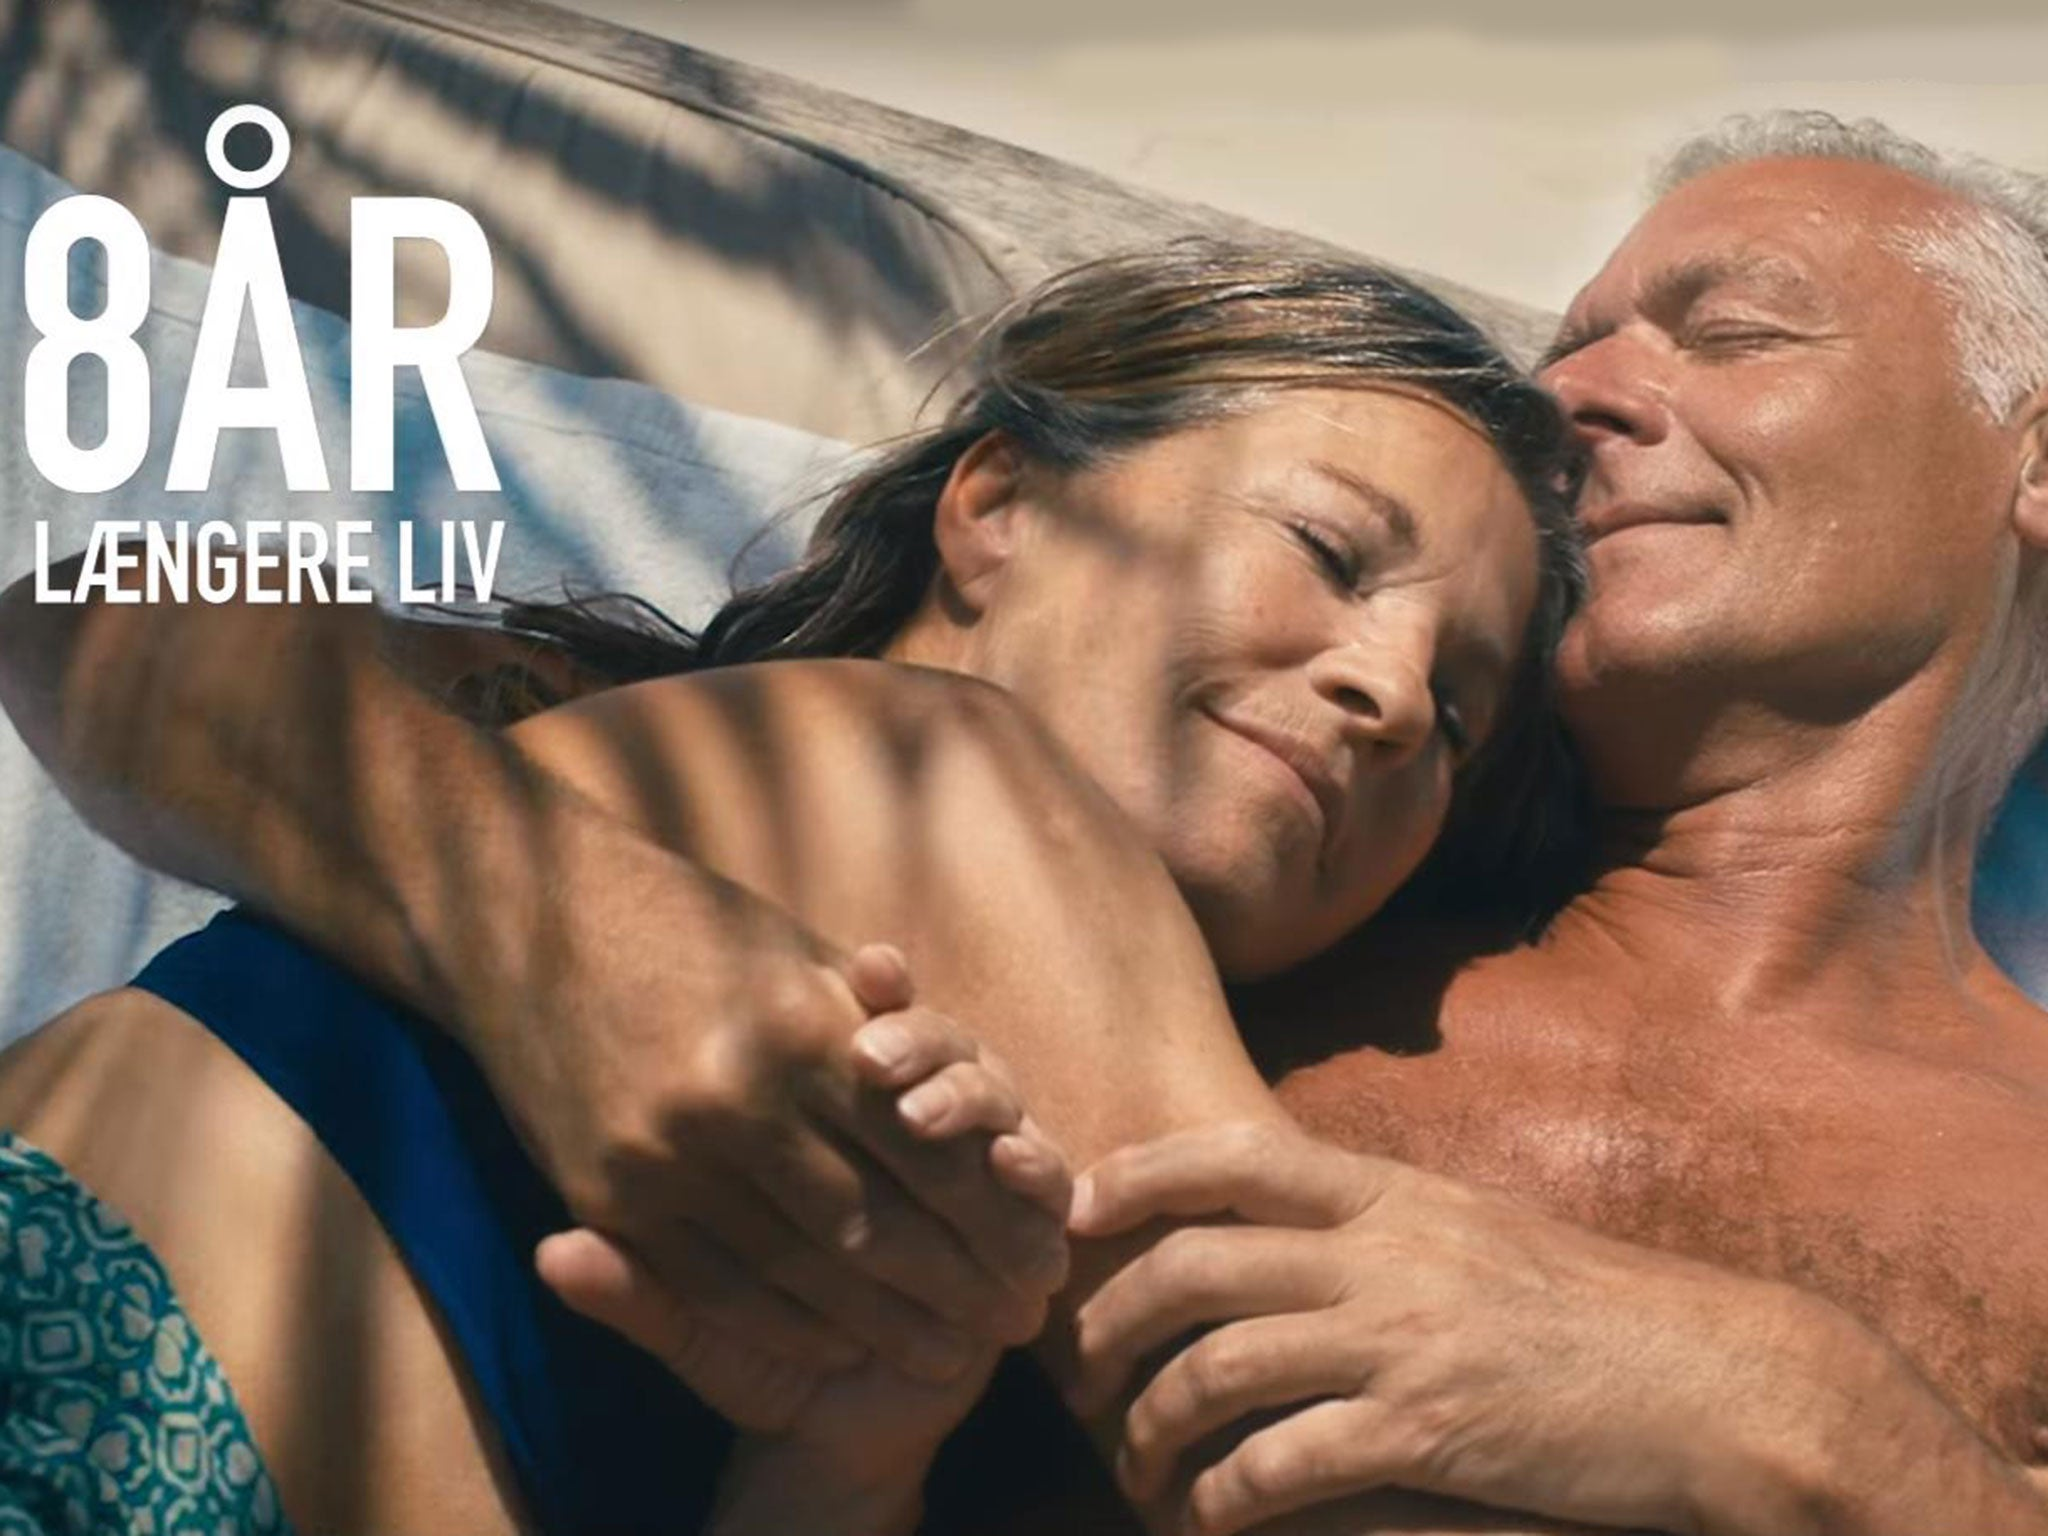 denmark's 'do it forever' video campaign encourages people to have